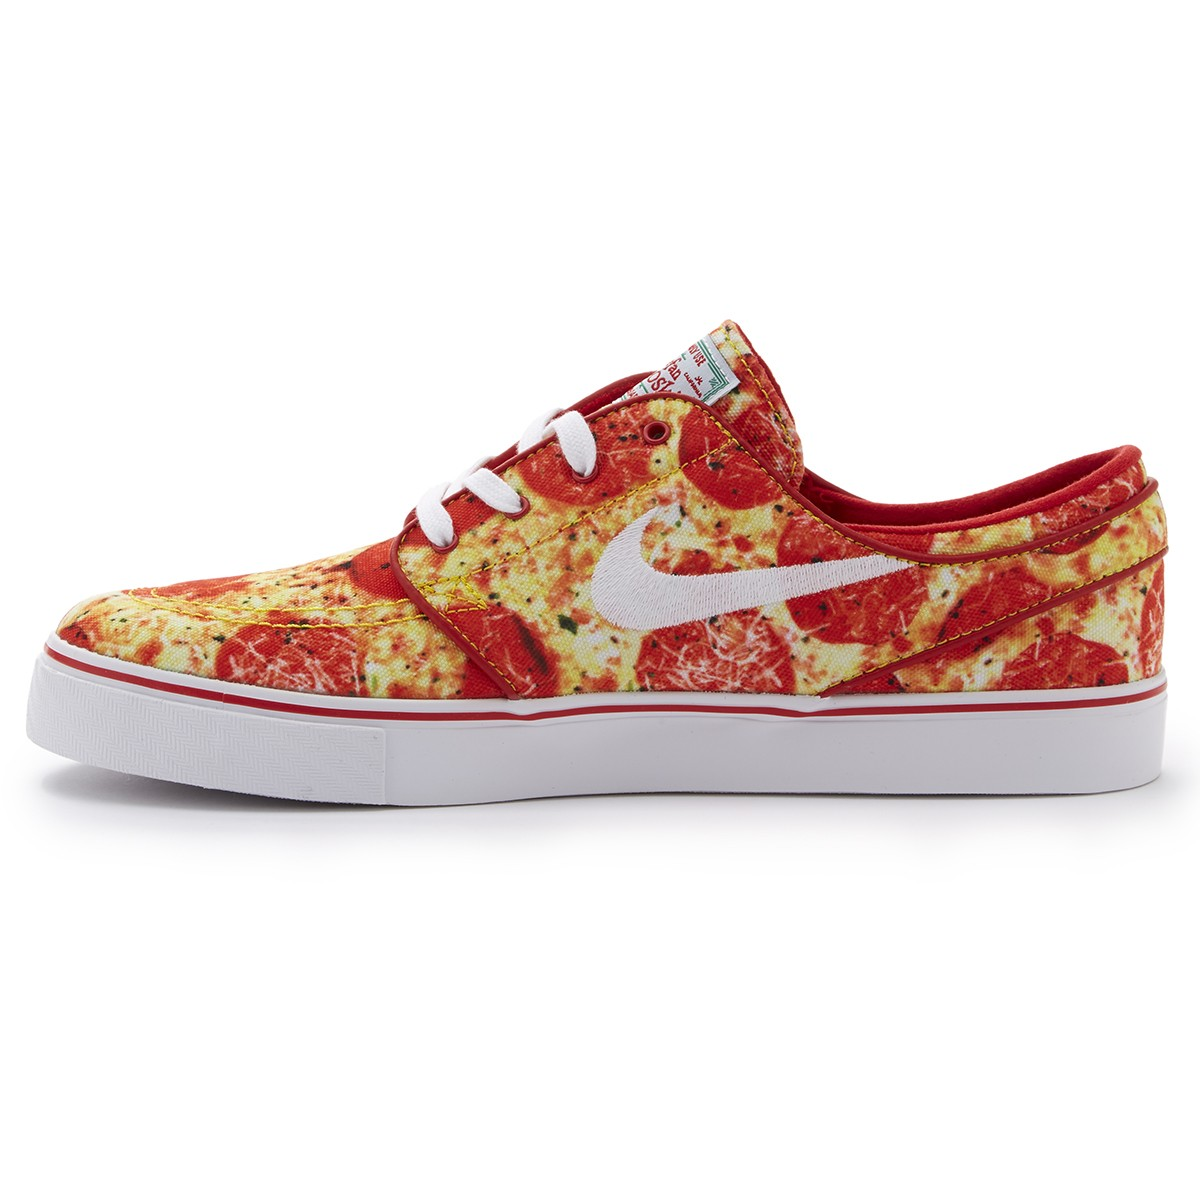 newest collection 2846c 48d79 Nike SB X Skate Mental Zoom Stefan Janoski Pizza Shoes - Red White - 4.0